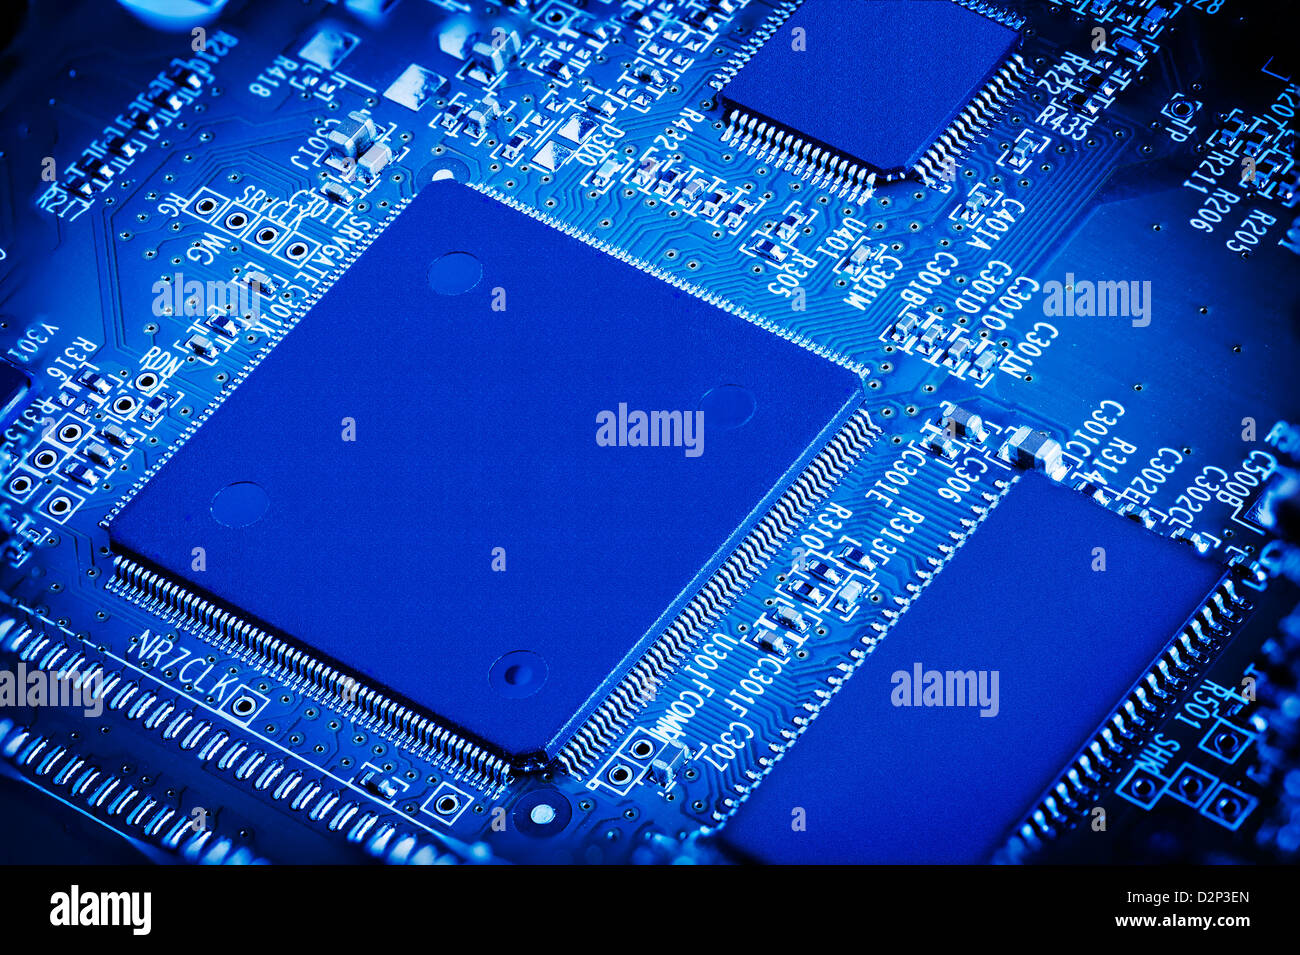 Power Microchip Stock Photos Images Alamy Is The Central Printed Circuit Board Pcb In Many Modern Computers On Blue Close Up Macro Detail Image